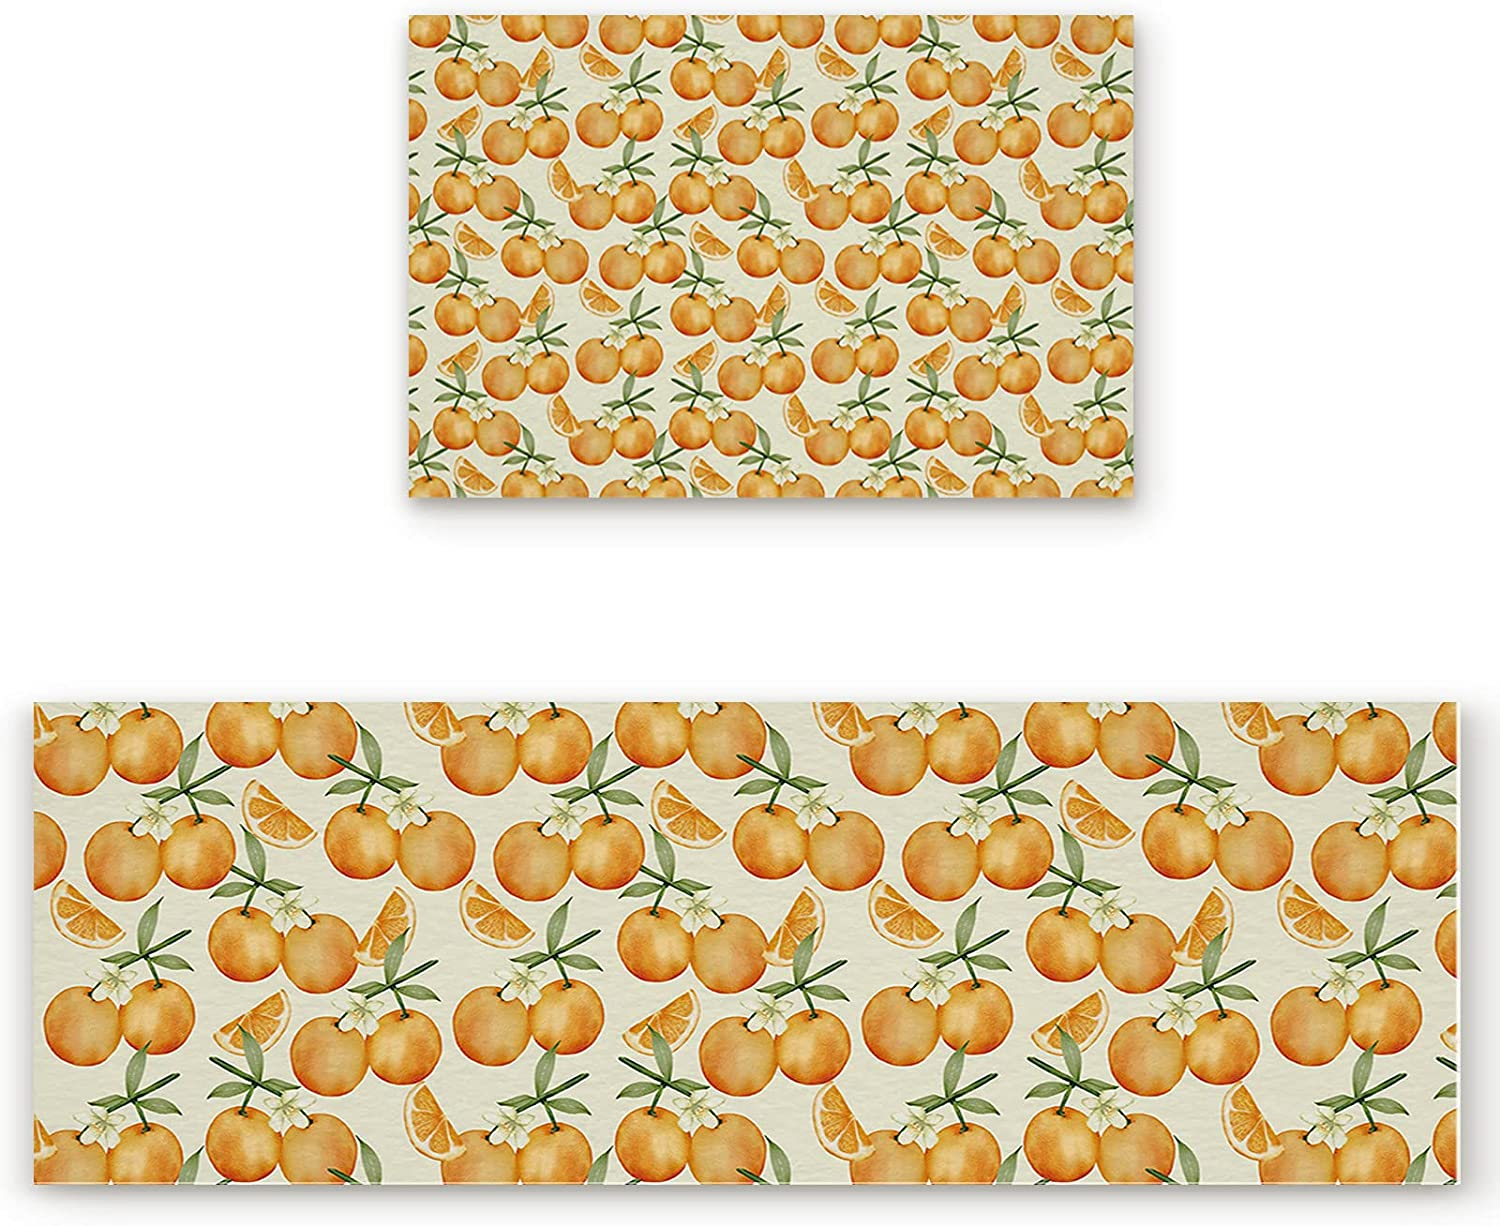 DIOMECL 2 4 years warranty Piece Kitchen Rugs and Fatigue Max 58% OFF Mats Anti Mat S